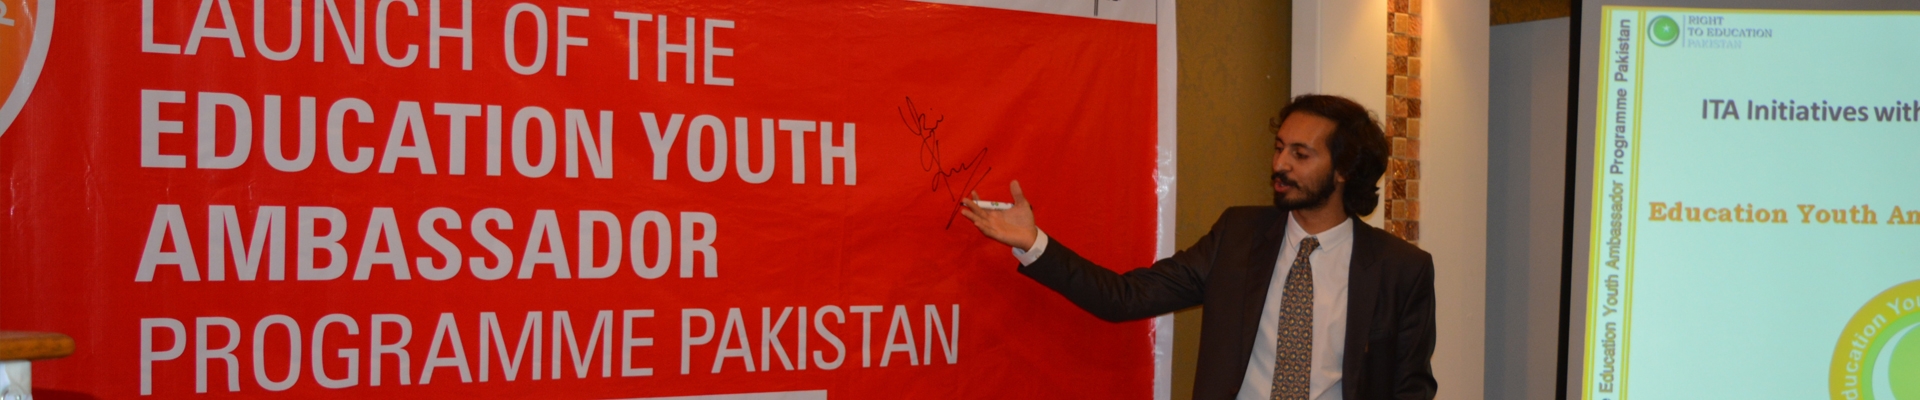 Education Youth Ambassador Programme Launched in Pakistan